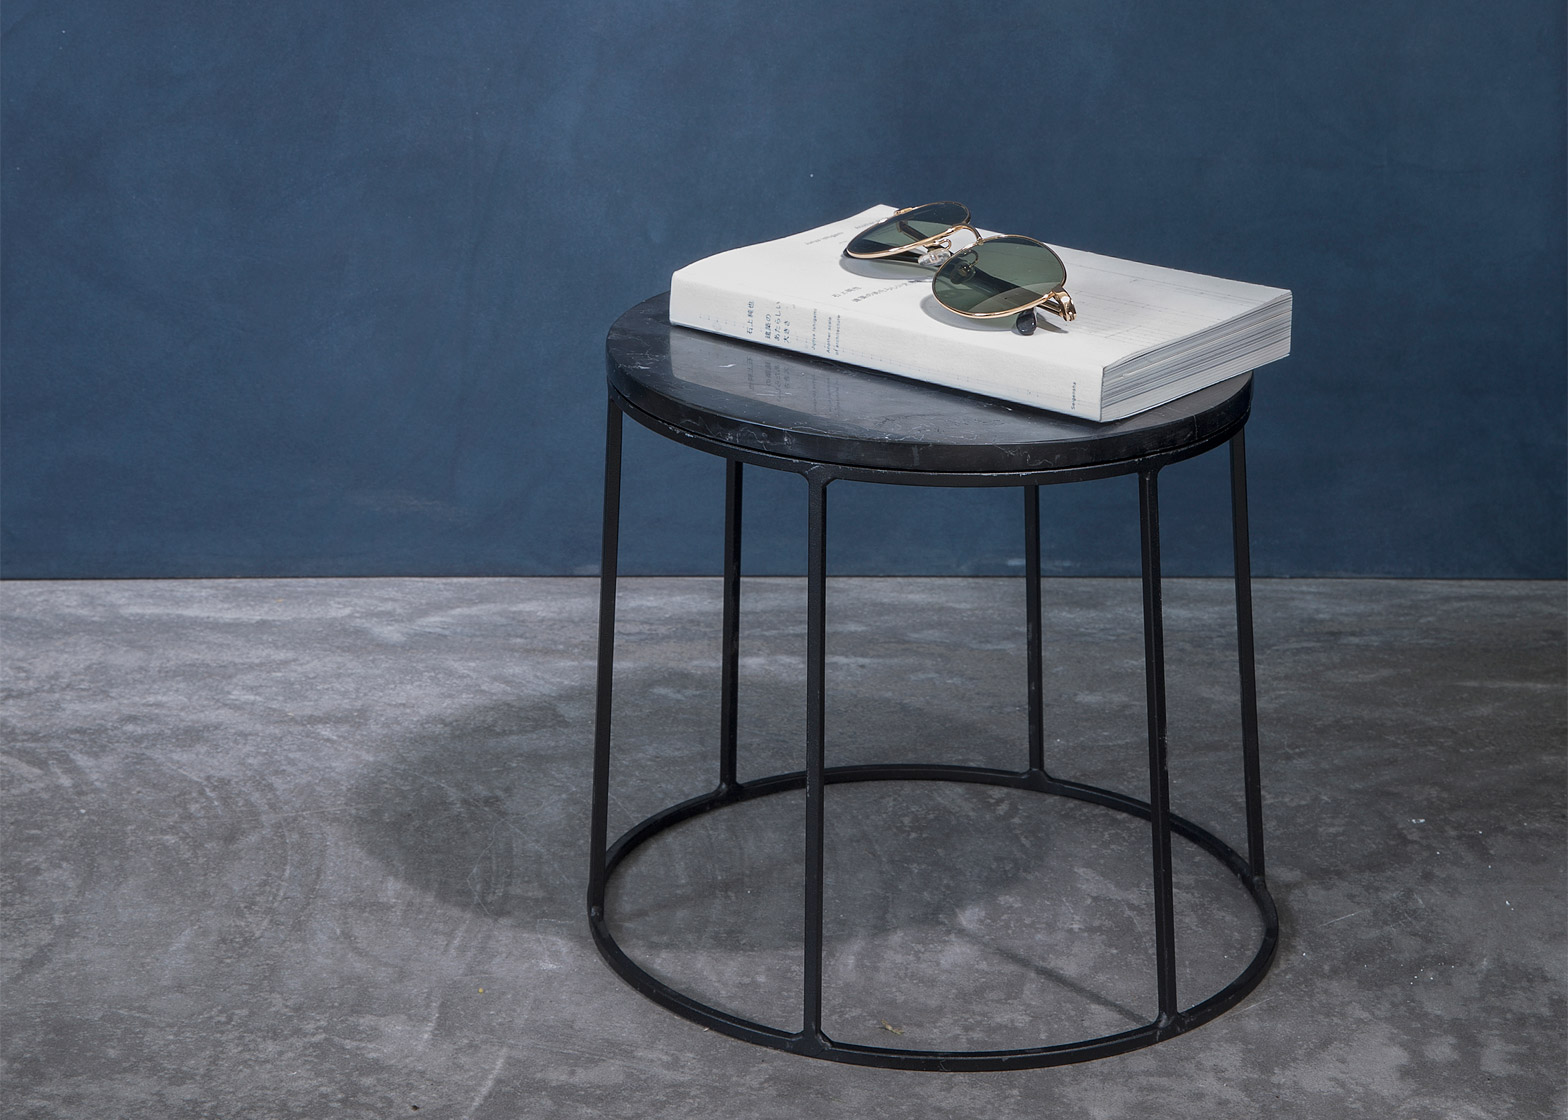 Menu to launch Modernism Reimagined collection during Maison&Objet